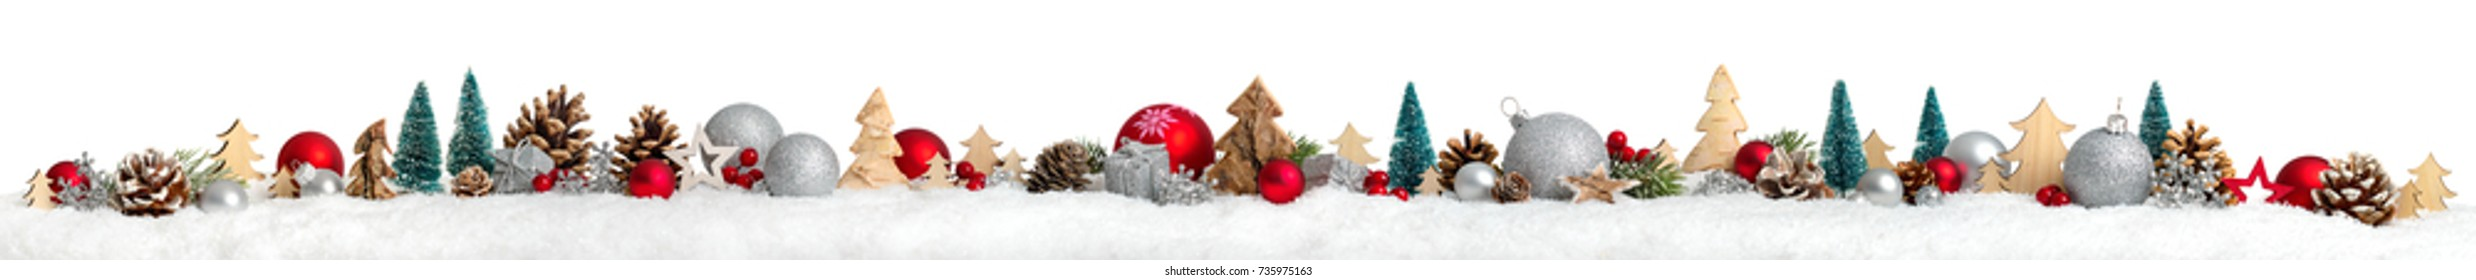 Christmas border or banner with ornaments arranged in a row on snow, extra wide and isolated on white background